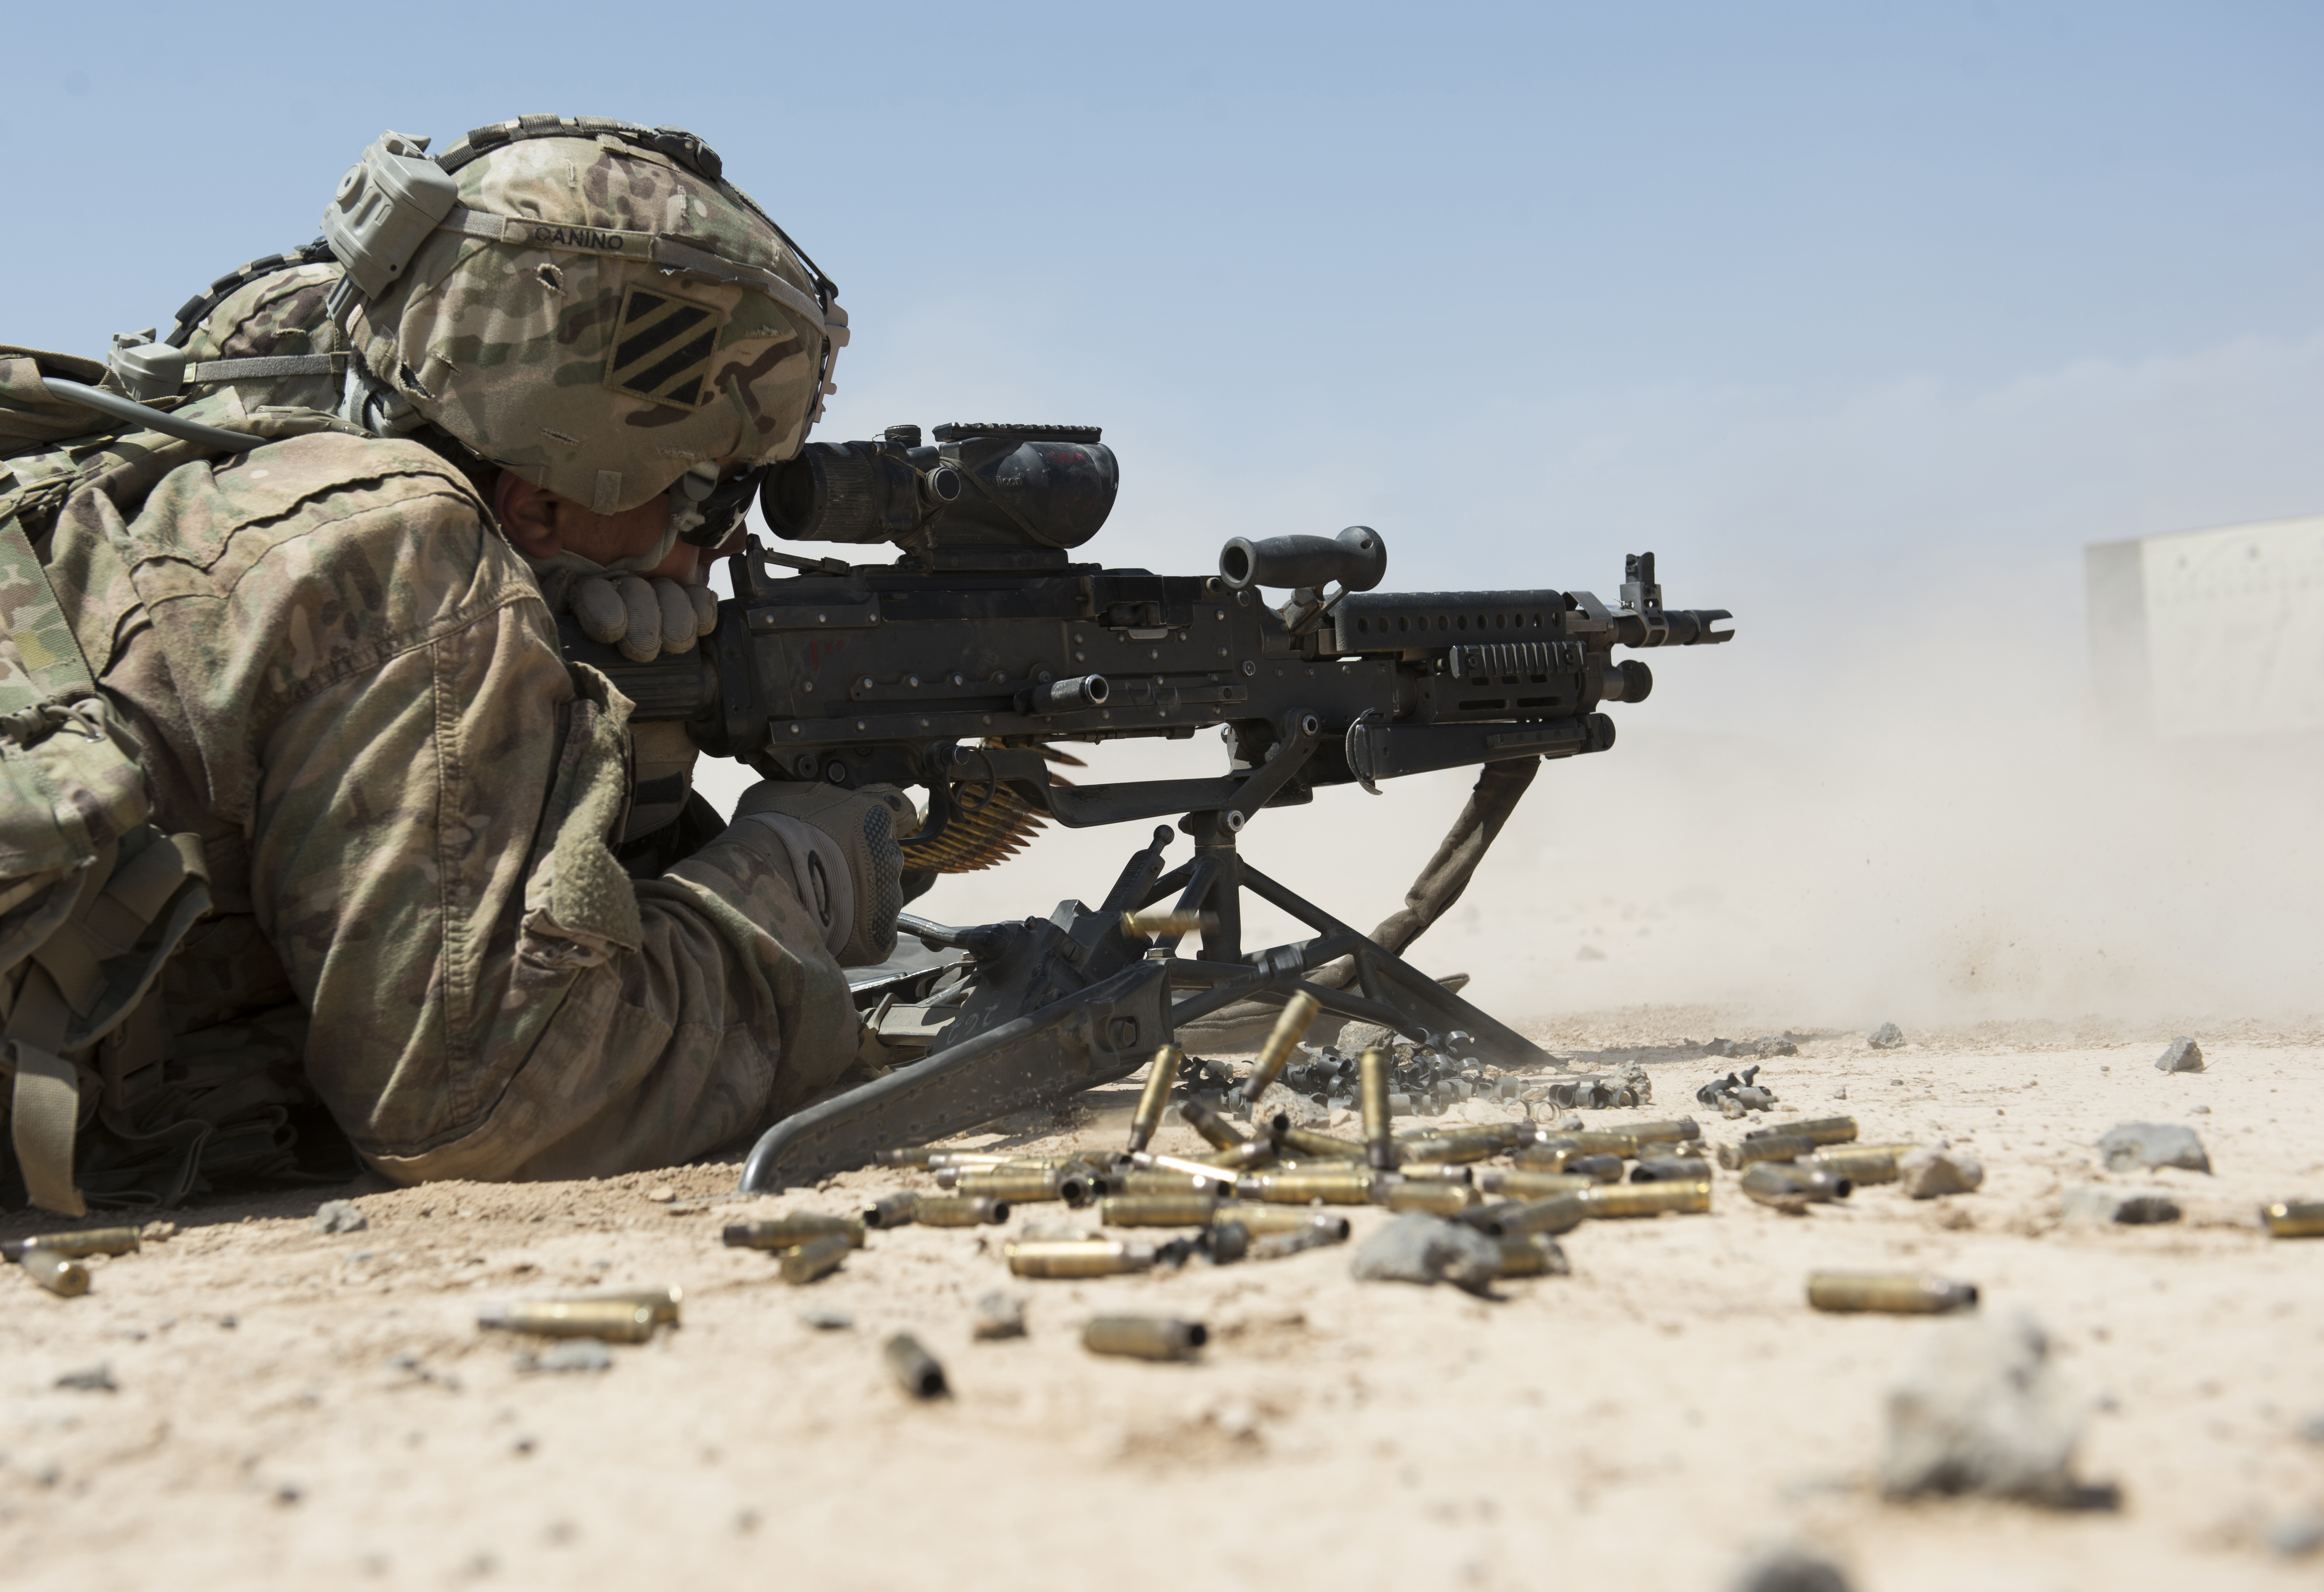 U.S. Army Pfc. George Canino, Alpha Company, 3rd Battalion, 15th Infantry Regiment M240 gunner, fires a M240L during weapons qualification Oct. 14, 2015, in Arta, Djibouti. Opportunities like the weapons density live fire course enable soldiers to become experts with their weapons systems through meticulous preparation and training. (U.S. Air Force photo by Senior Airman Peter Thompson/Released)